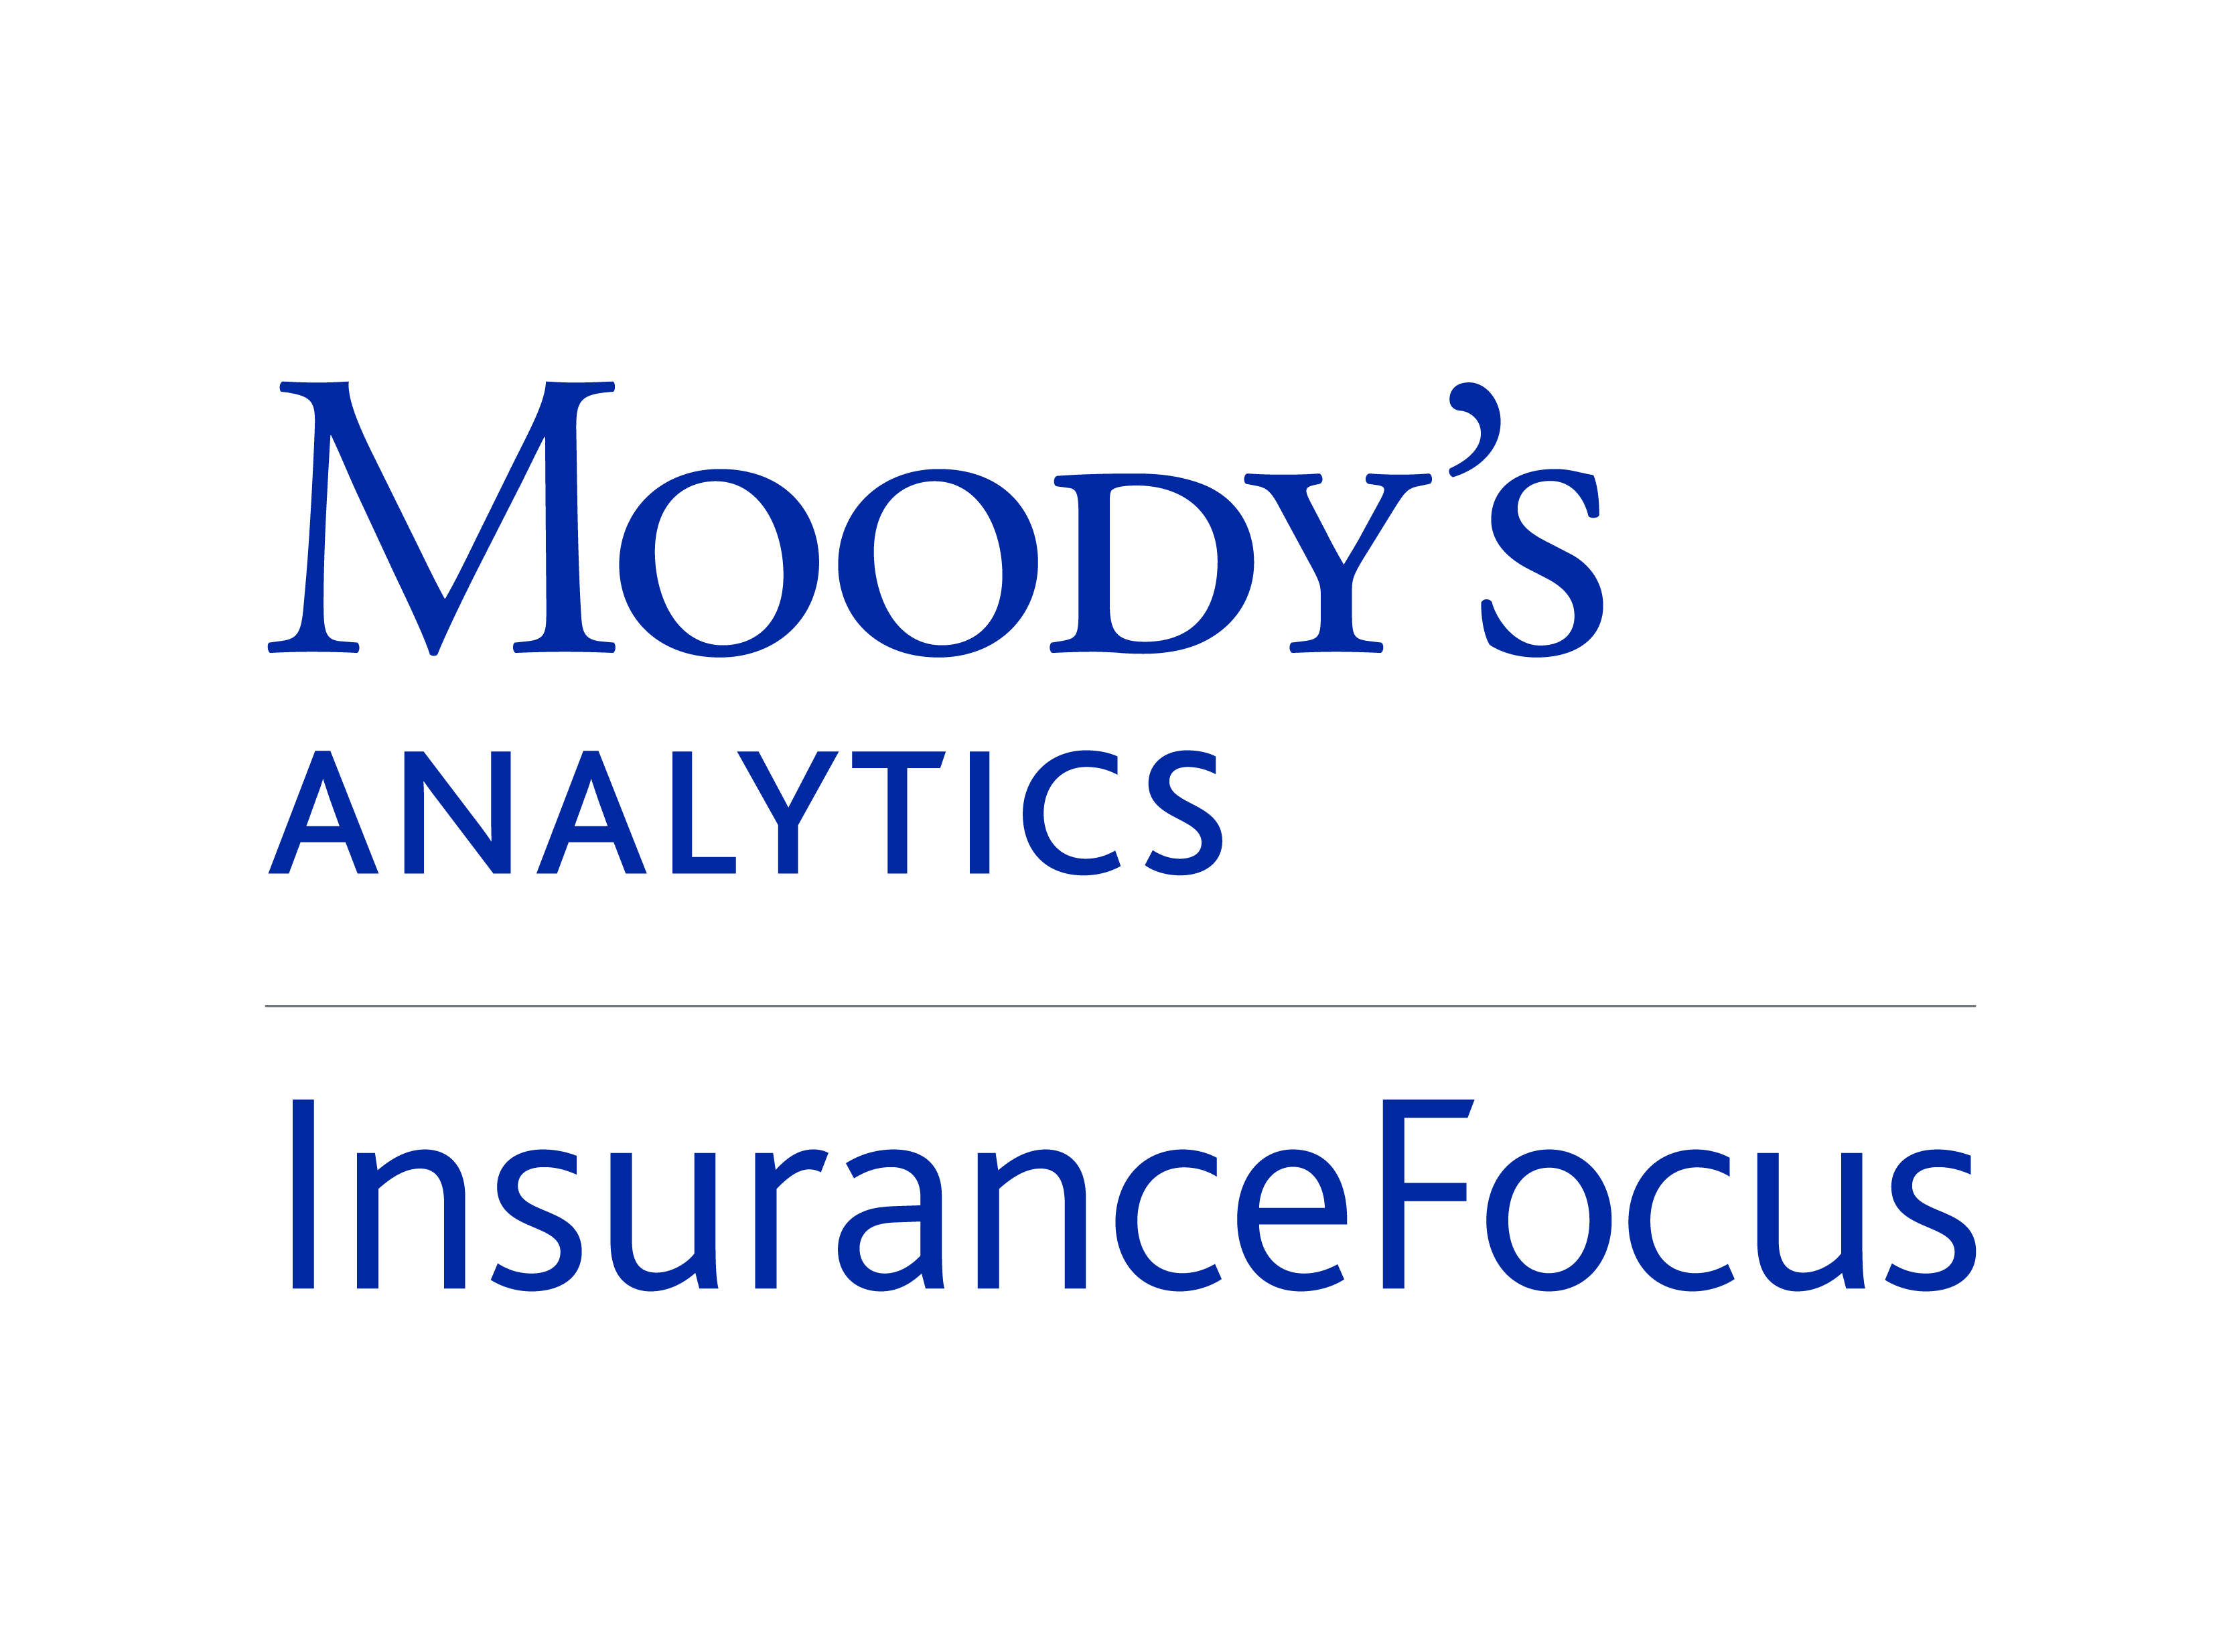 Moodys analytics insurancefocus logo